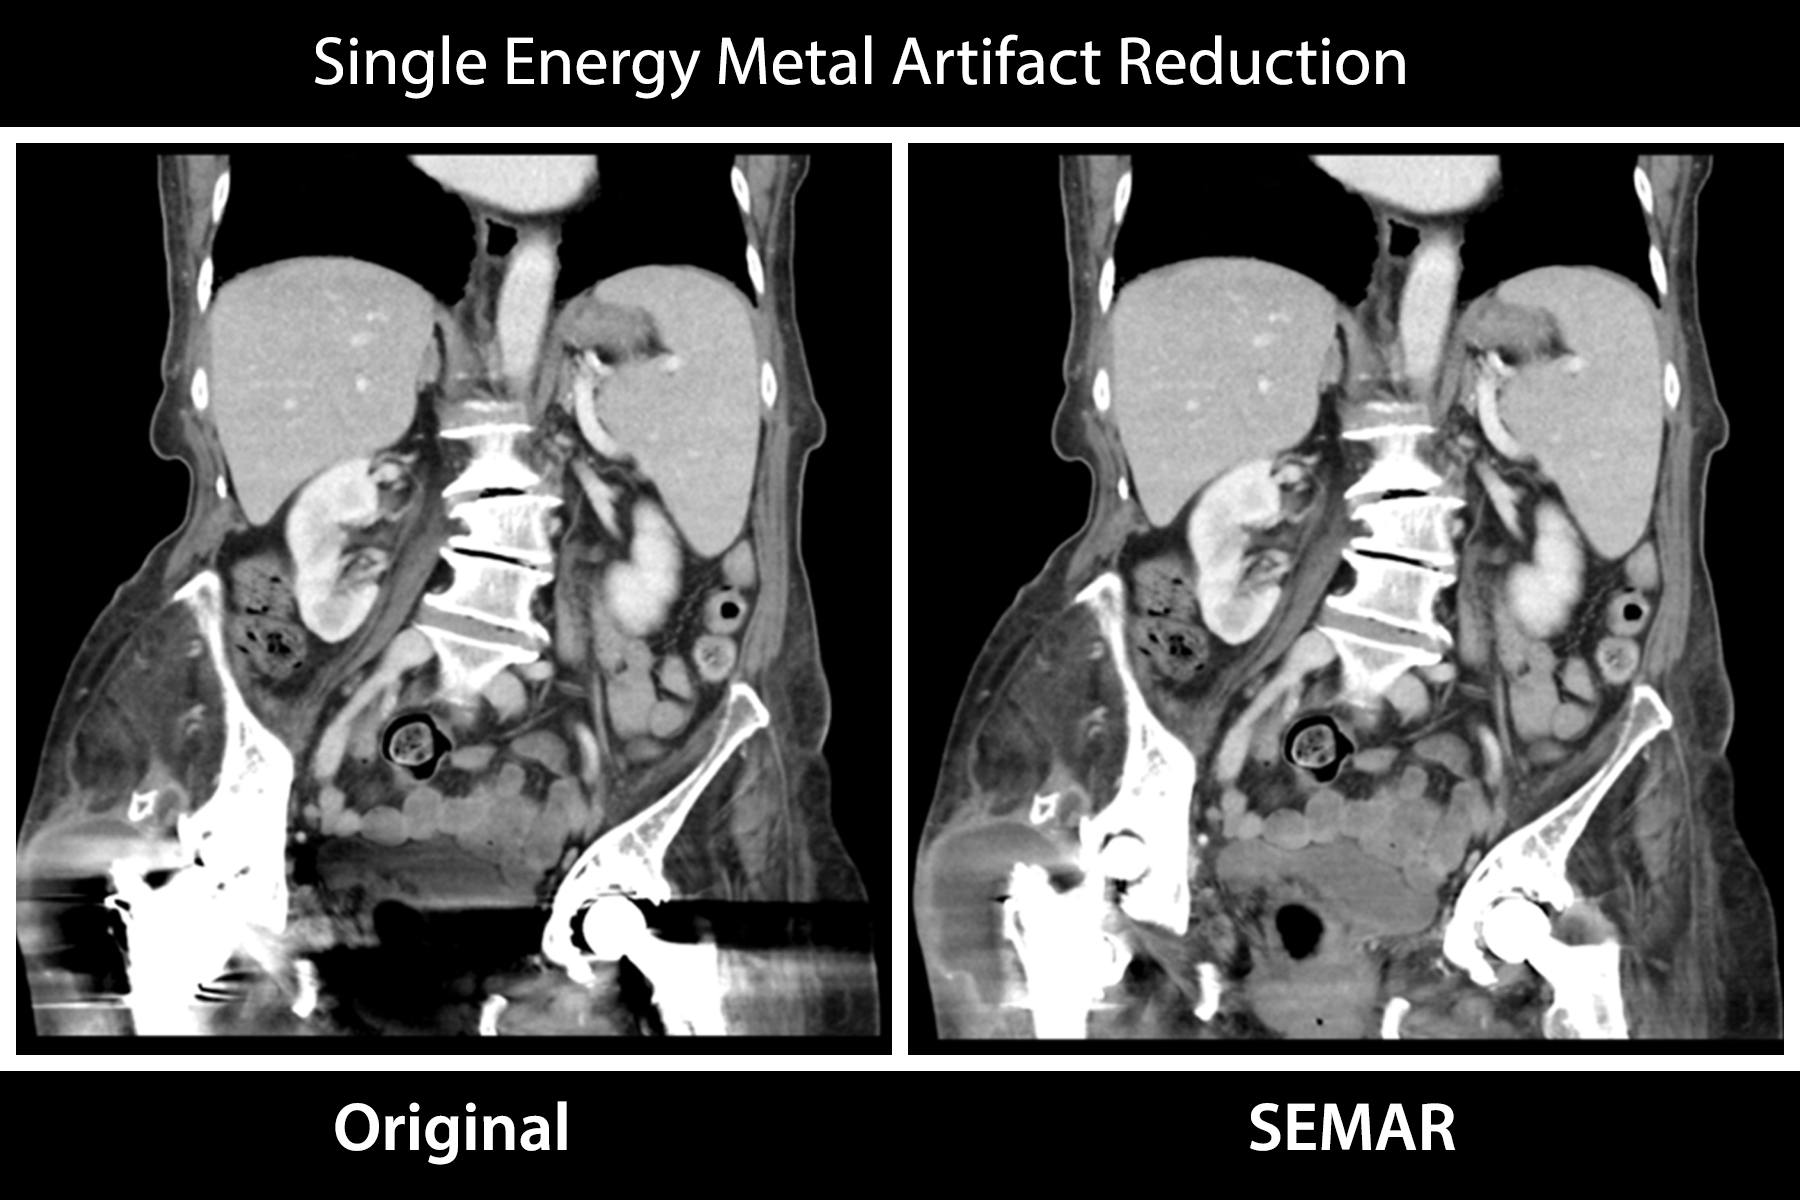 Single Energy Metal Artifact Reduction (SEMAR)